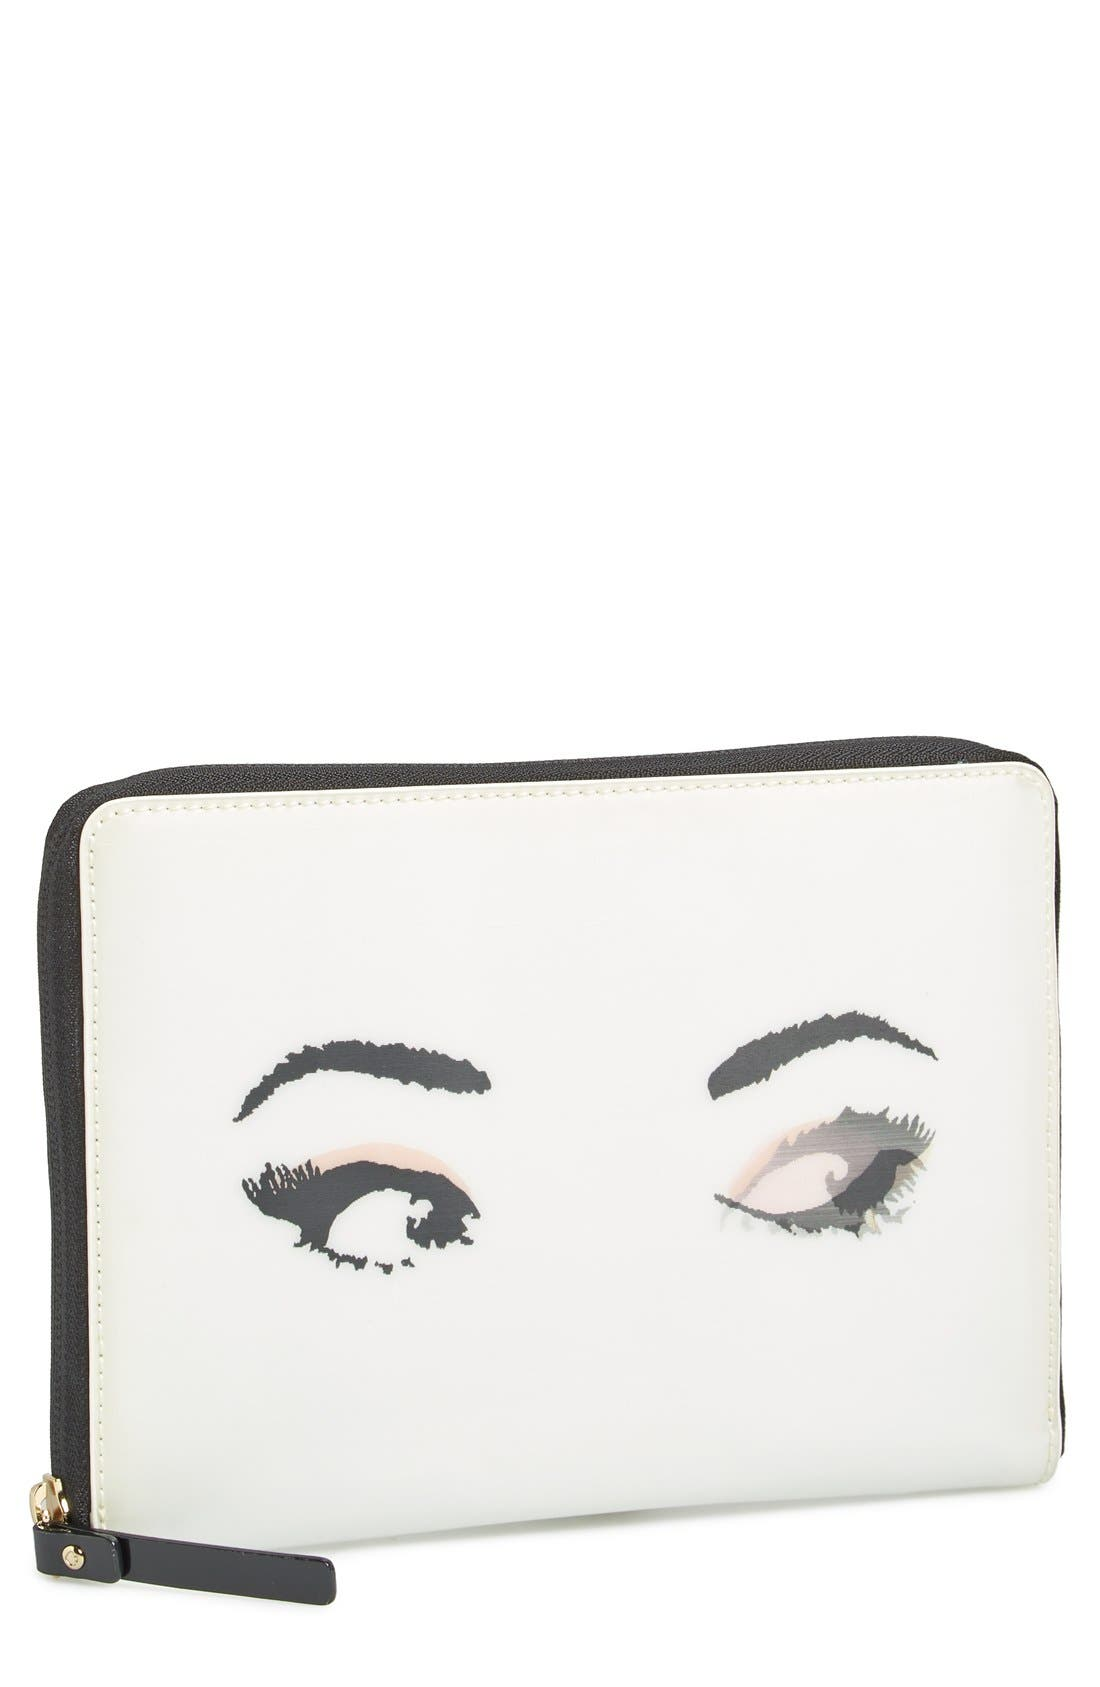 Main Image - kate spade new york 'lenticular eyes' iPad mini sleeve